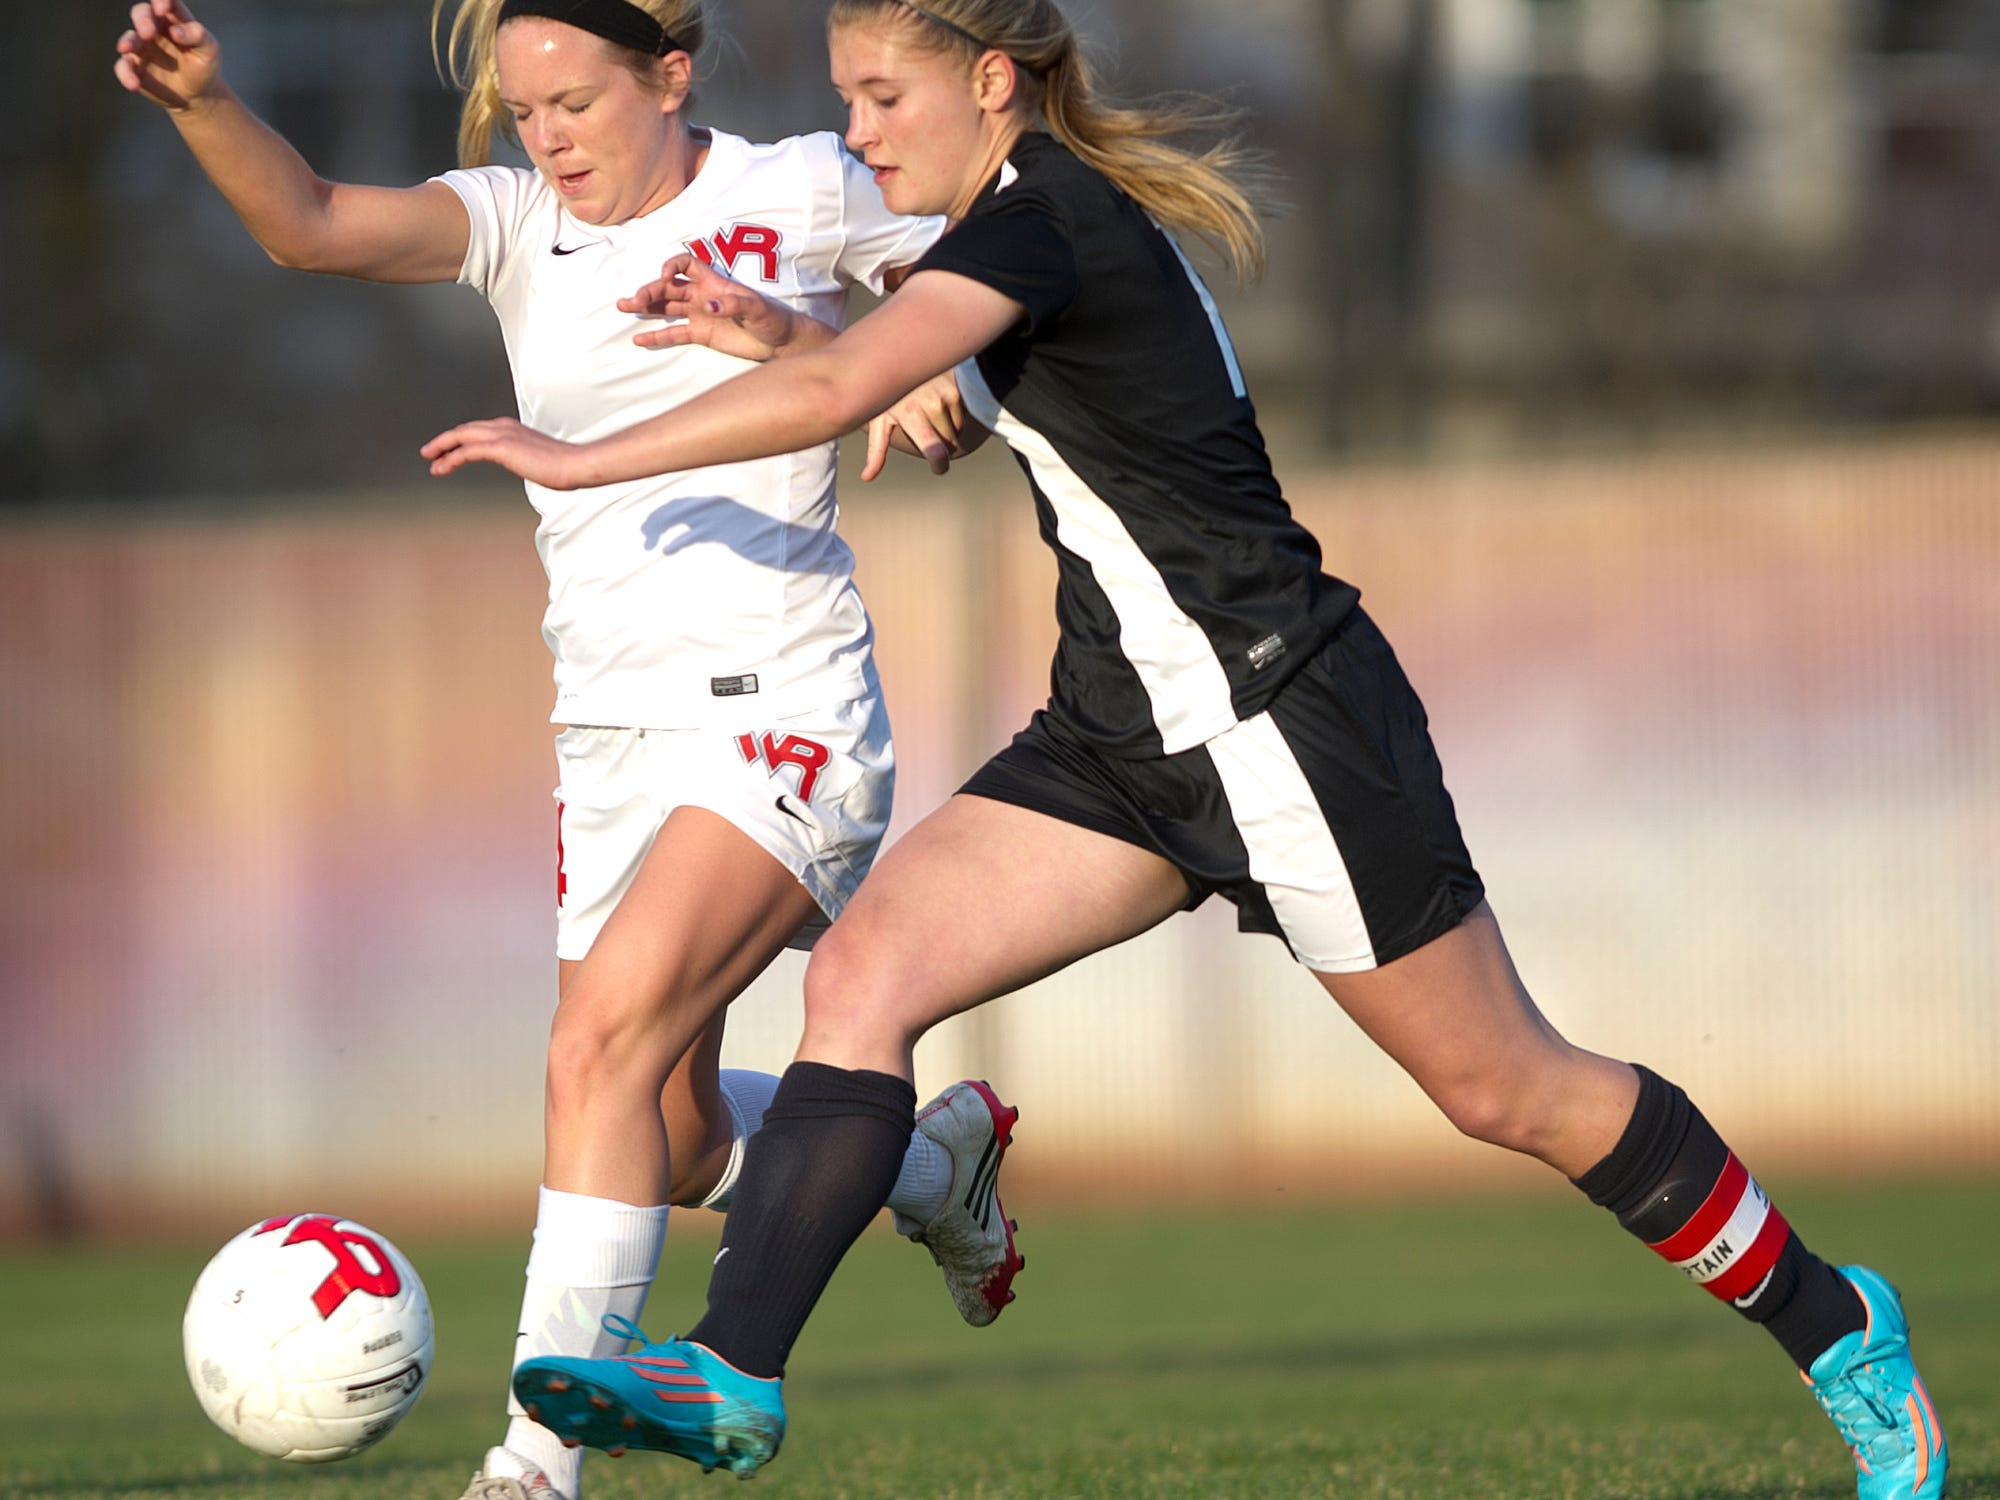 Wisconsin Rapids' Jaimie Vanderhei, left, battles Stevens Point Area Senior High's Abby Bohanski, right, for the ball during a Wisconsin Valley Conference soccer game Tuesday at Washington Field in Wisconsin Rapids.